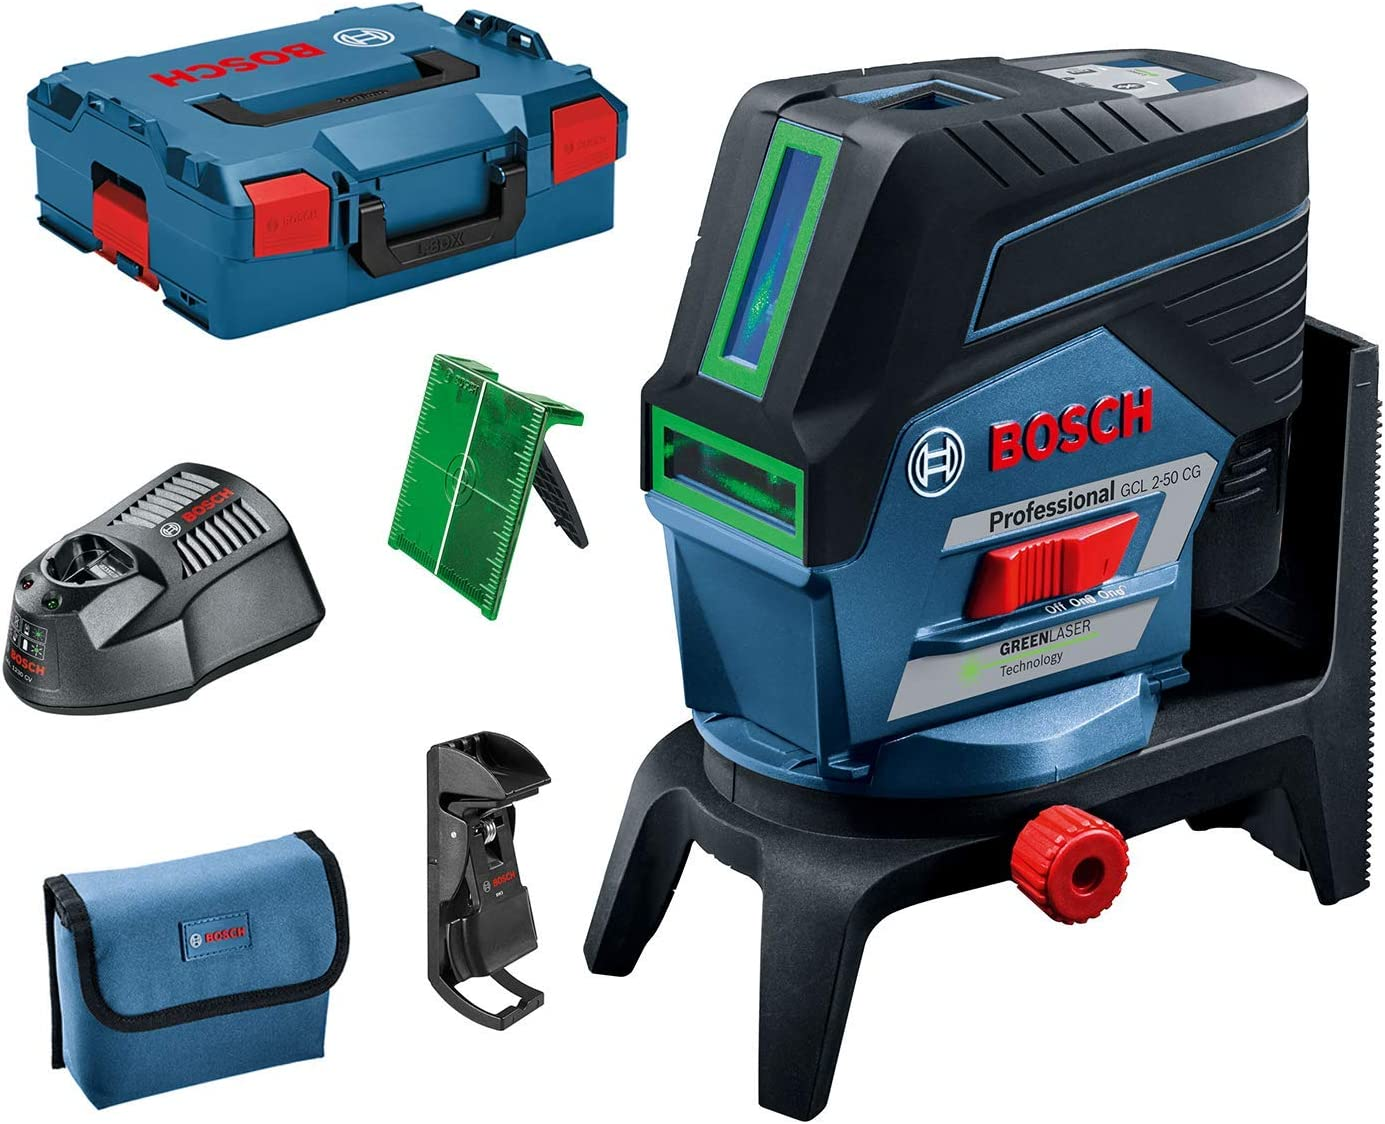 Bosch Professional GCL 2-50 CG Green Beam Combi Laser with RM2 Rotating Mount, Blue